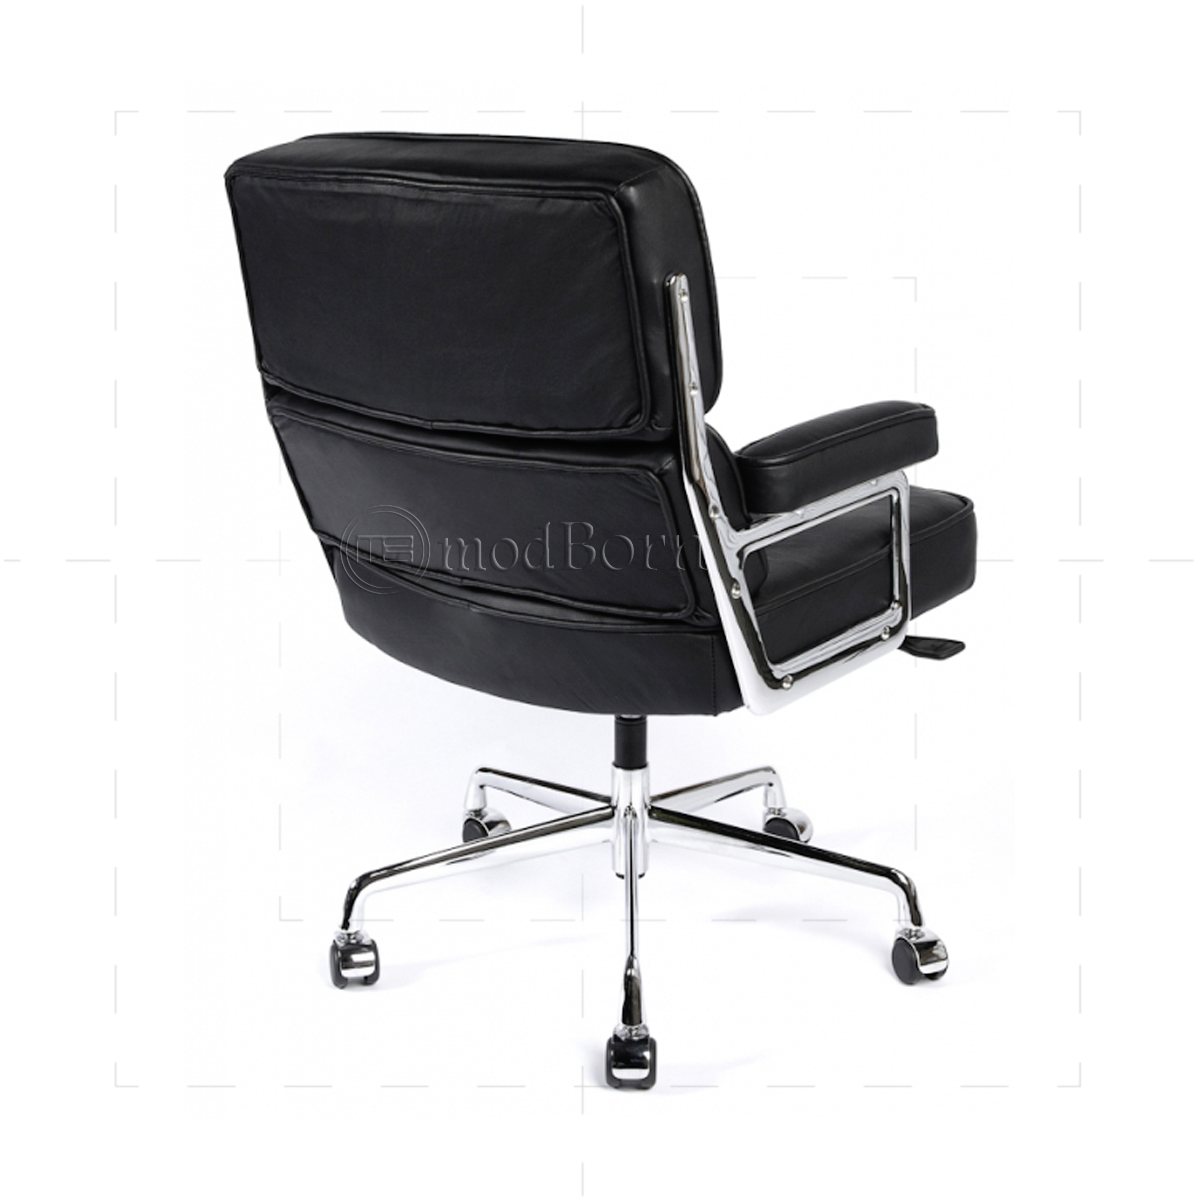 EA104 Eames Style Office Lobby Black Leather Executive Chair : charles eames es104 office chair 1 1200x1200 from www.modborn.com size 1200 x 1200 jpeg 381kB